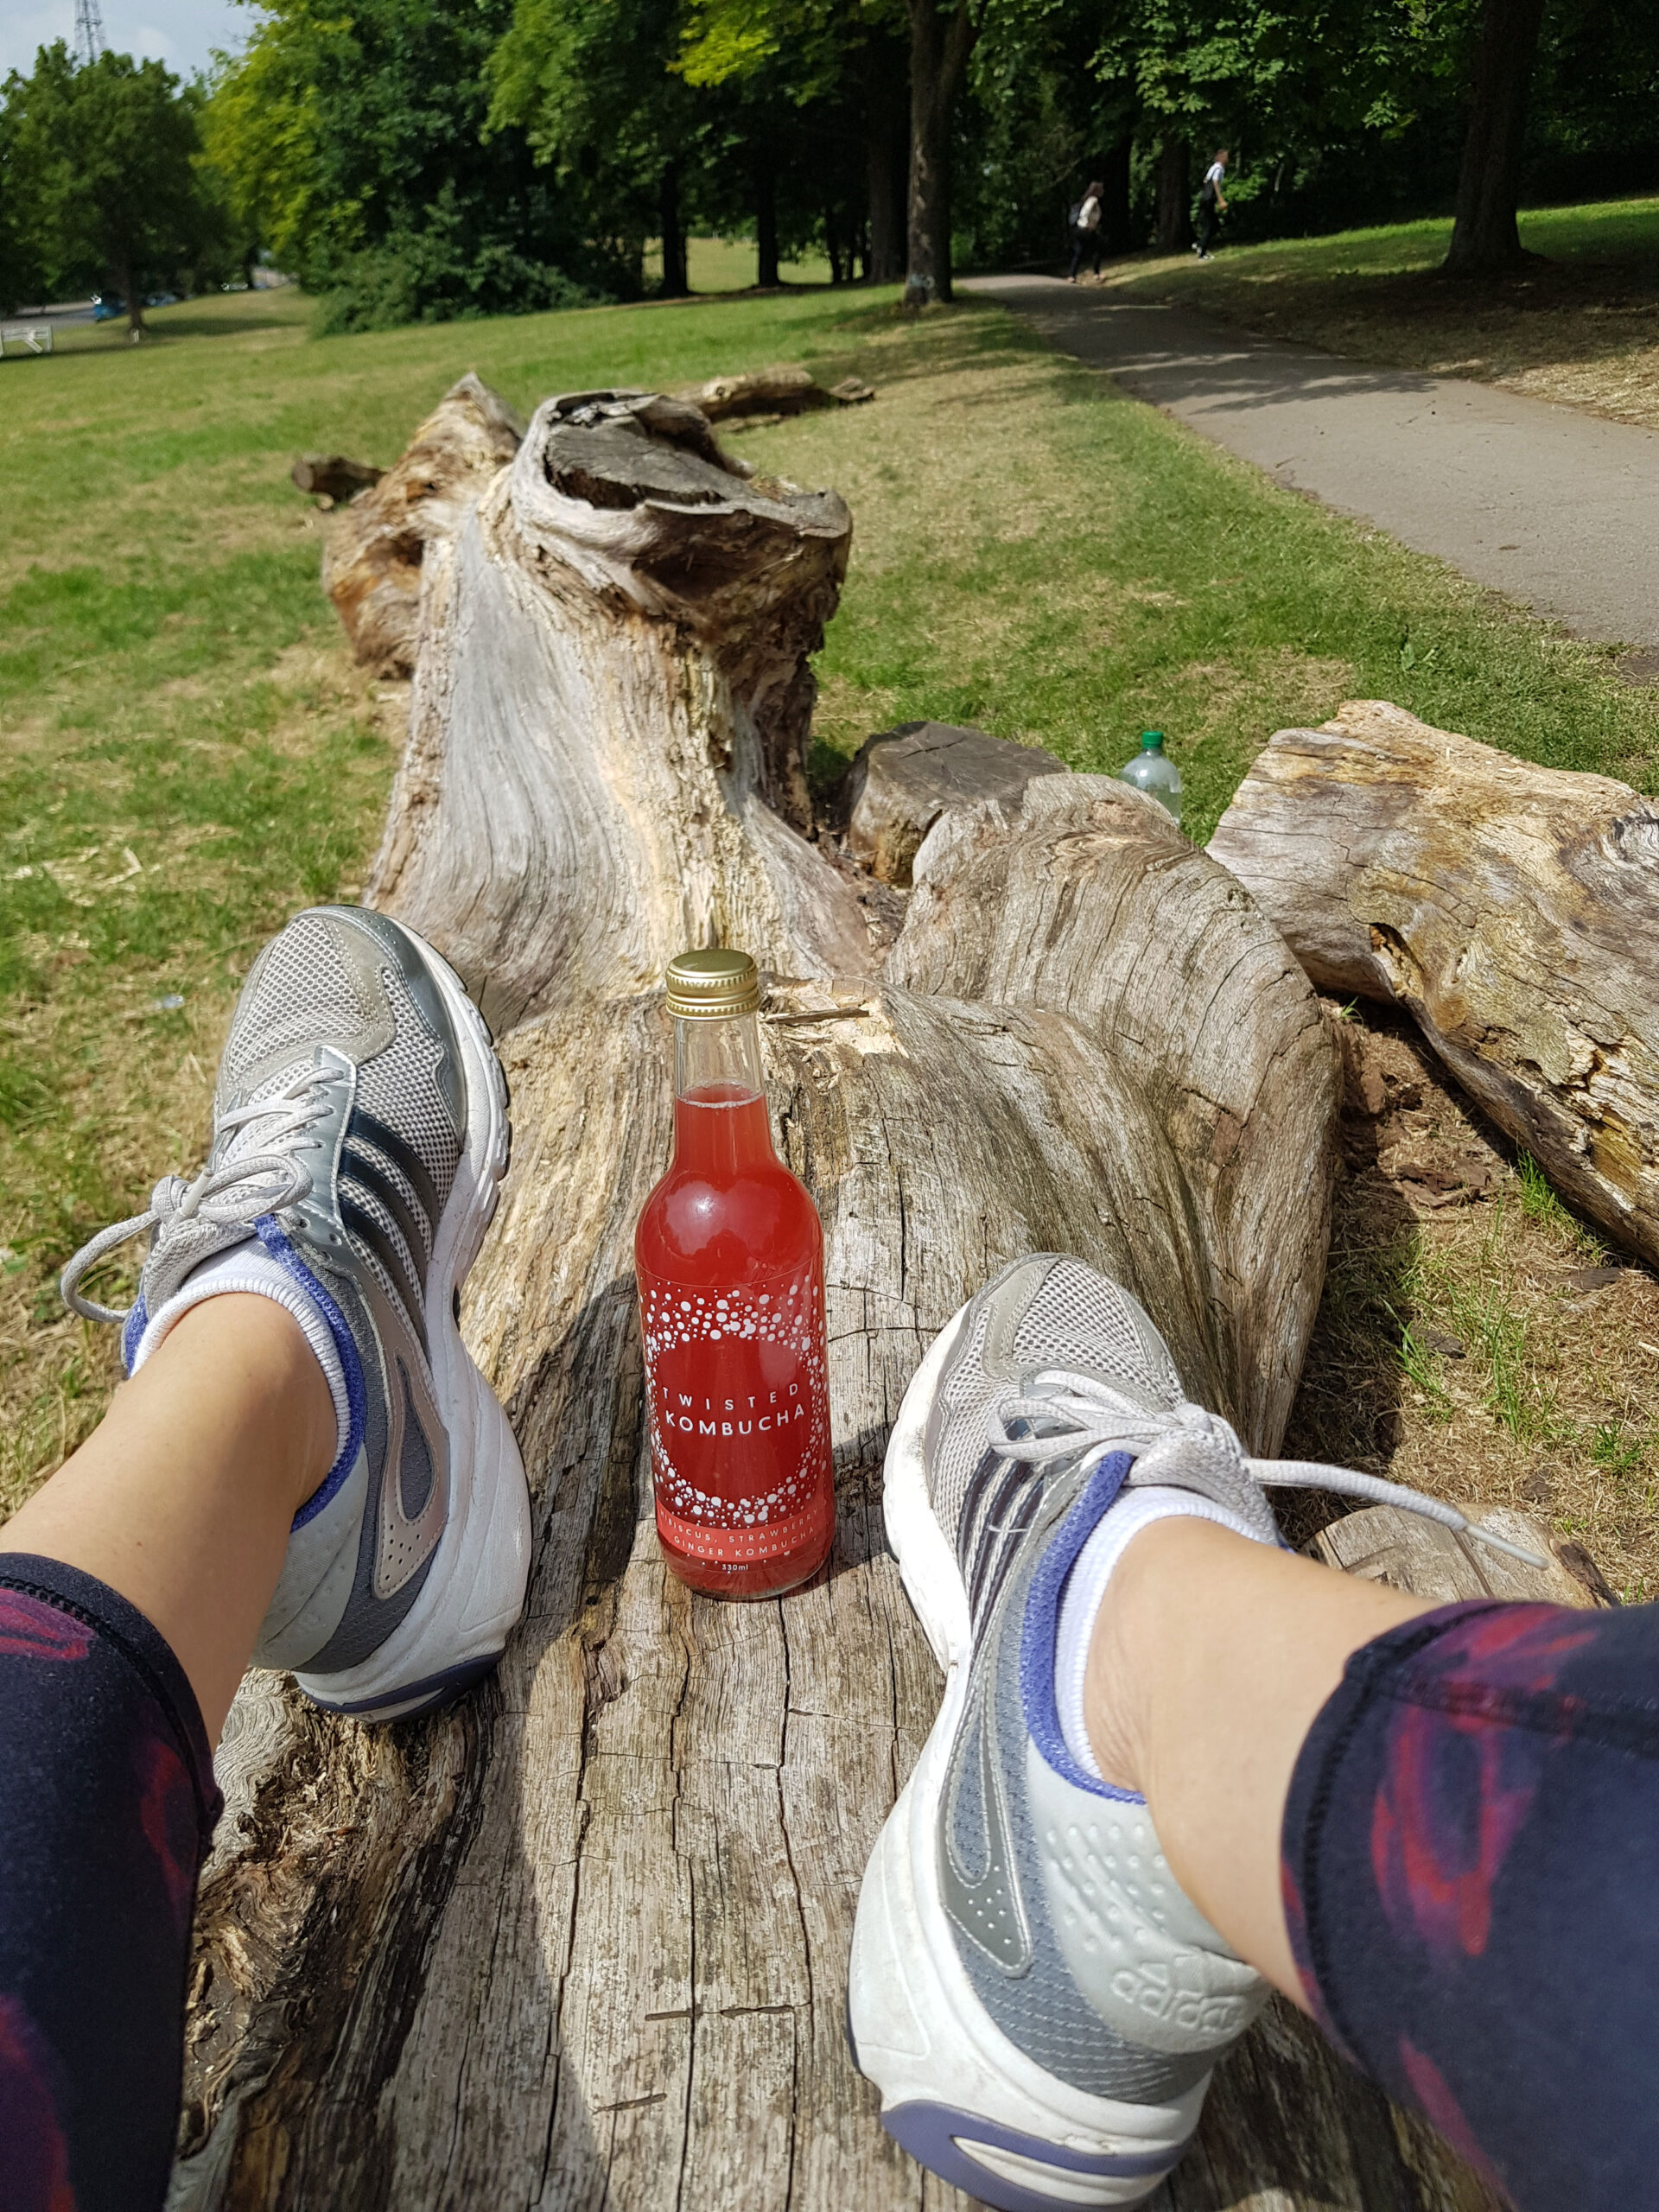 Twisted Kombucha on a log in the park